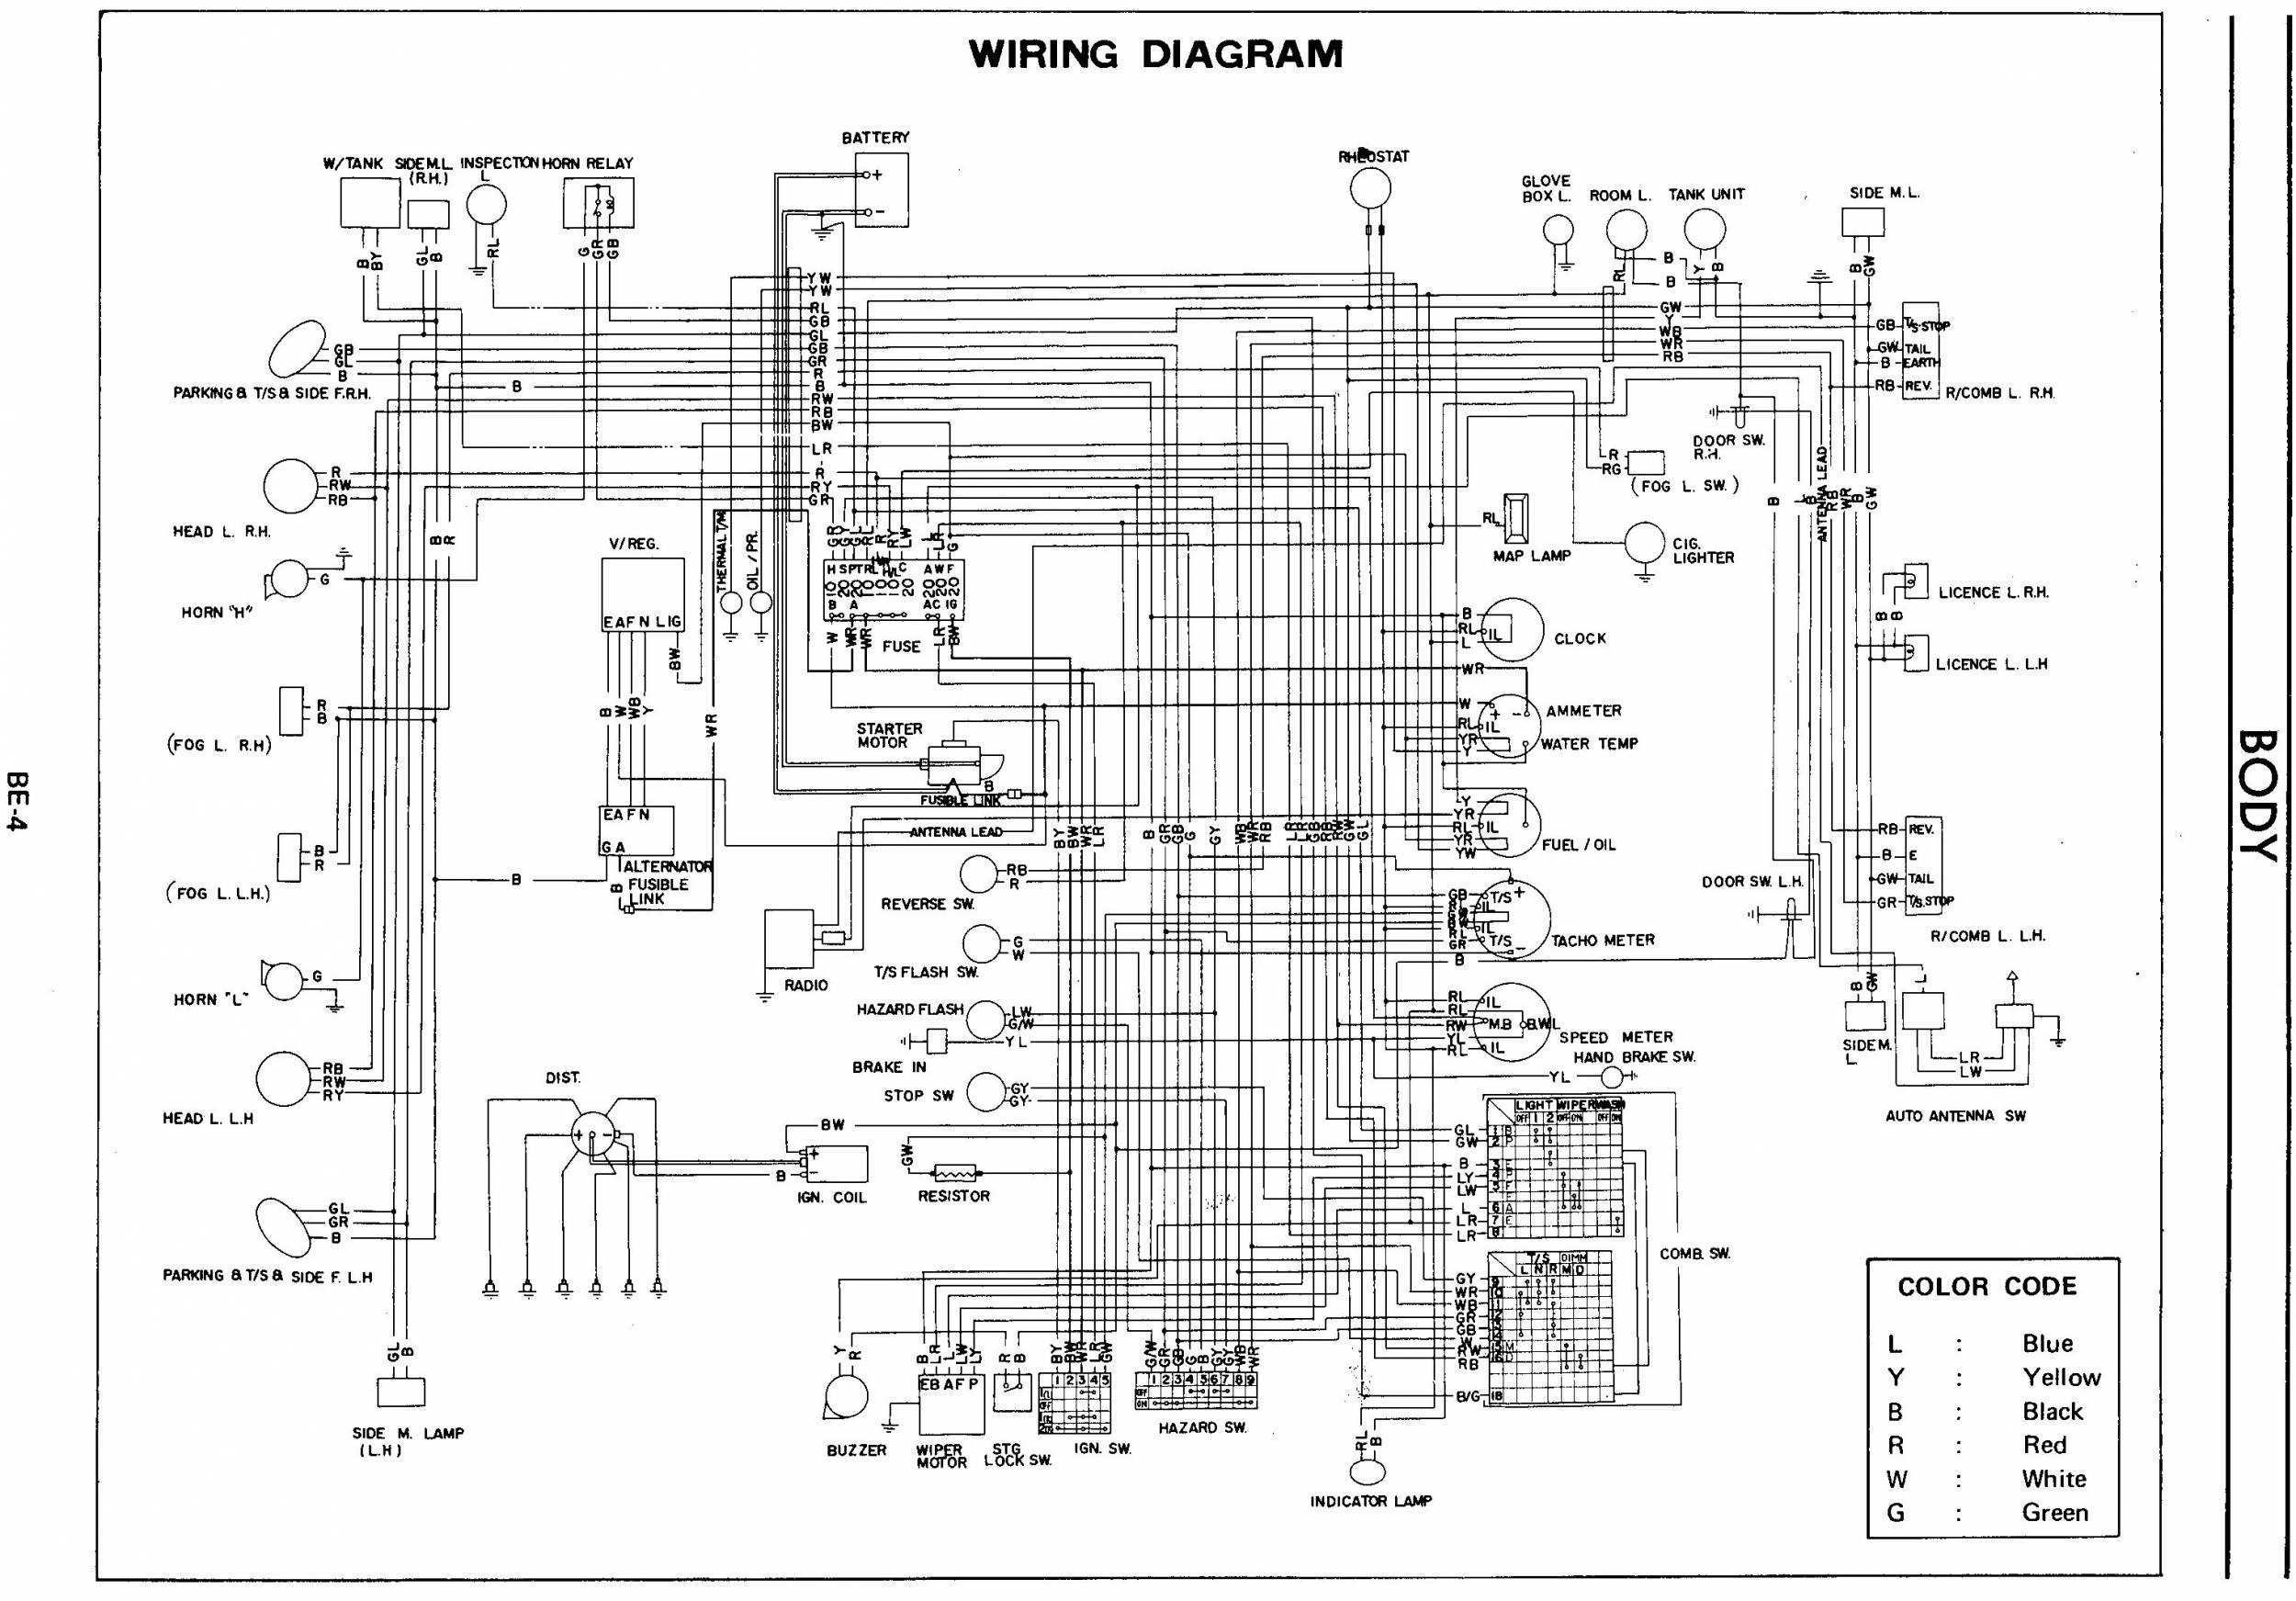 [DIAGRAM_38YU]  CT_2188] Bentley Publishers Technical Discussions C220 Wiring Diagram  Schematic Wiring | Mercedes Benz C220 Wiring |  | Astic Iosco Dness Plan Boapu Mohammedshrine Librar Wiring 101